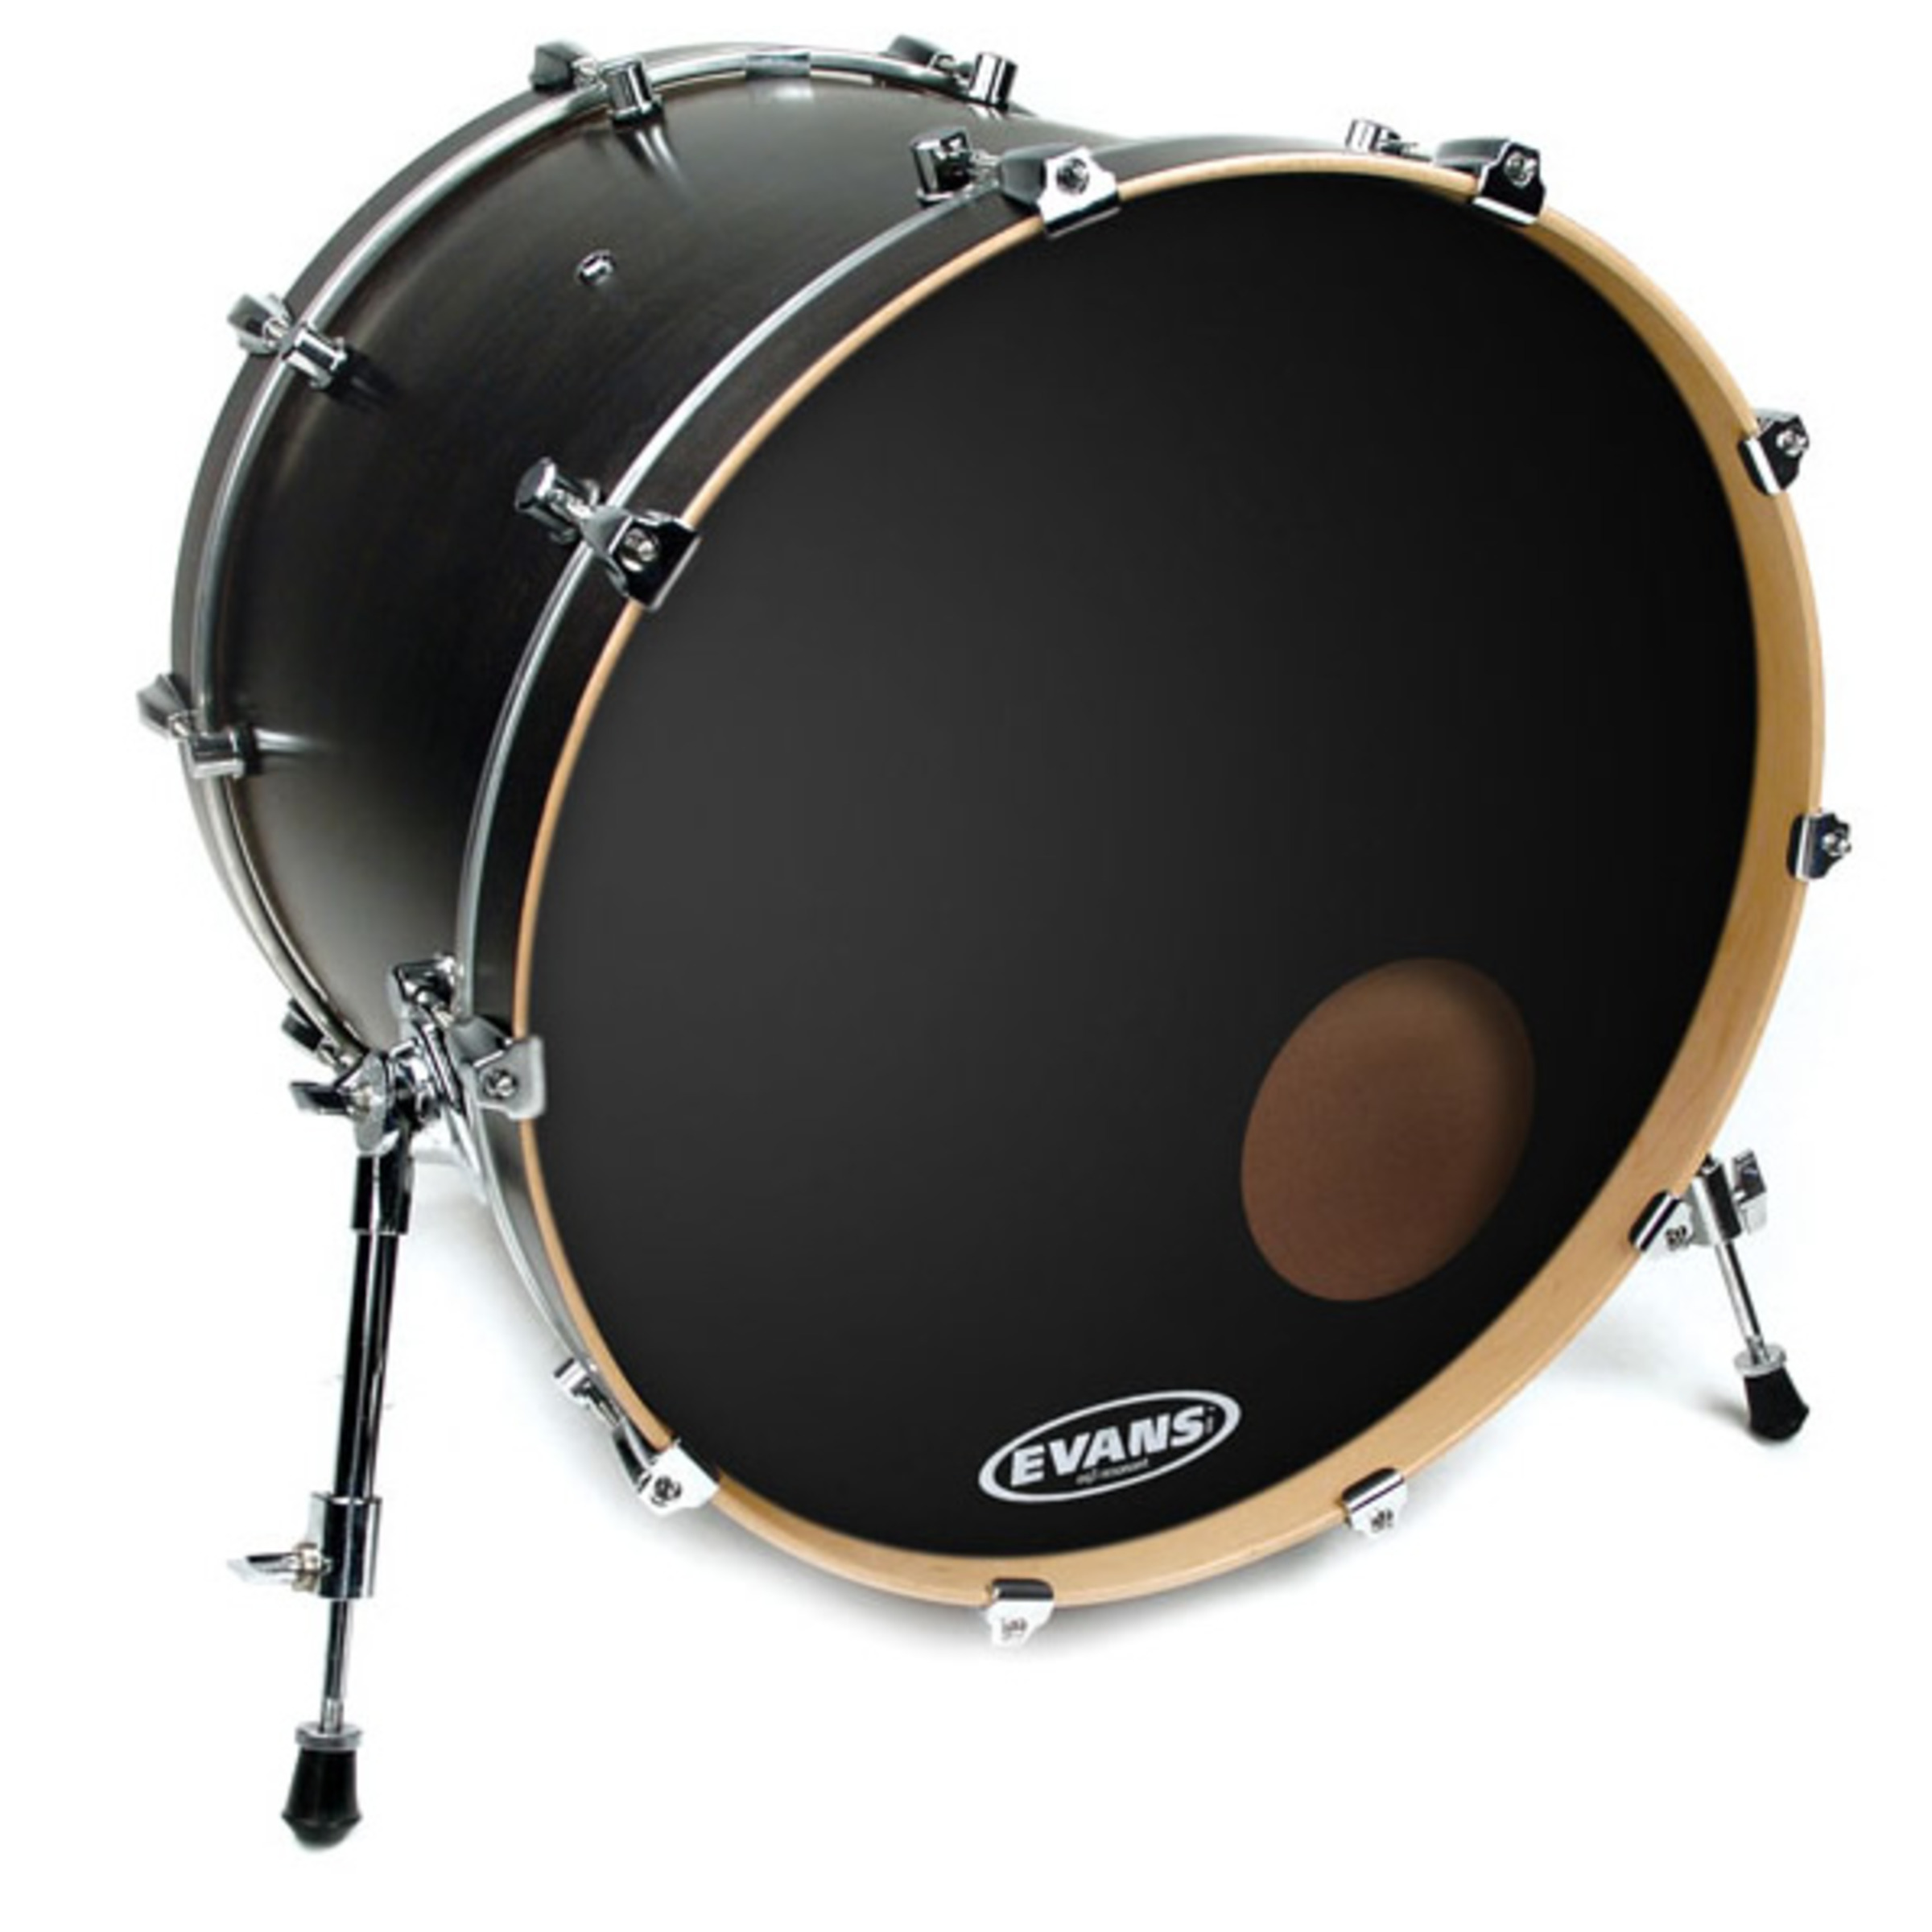 evans eq3 resonant onyx bass drum head giggear. Black Bedroom Furniture Sets. Home Design Ideas